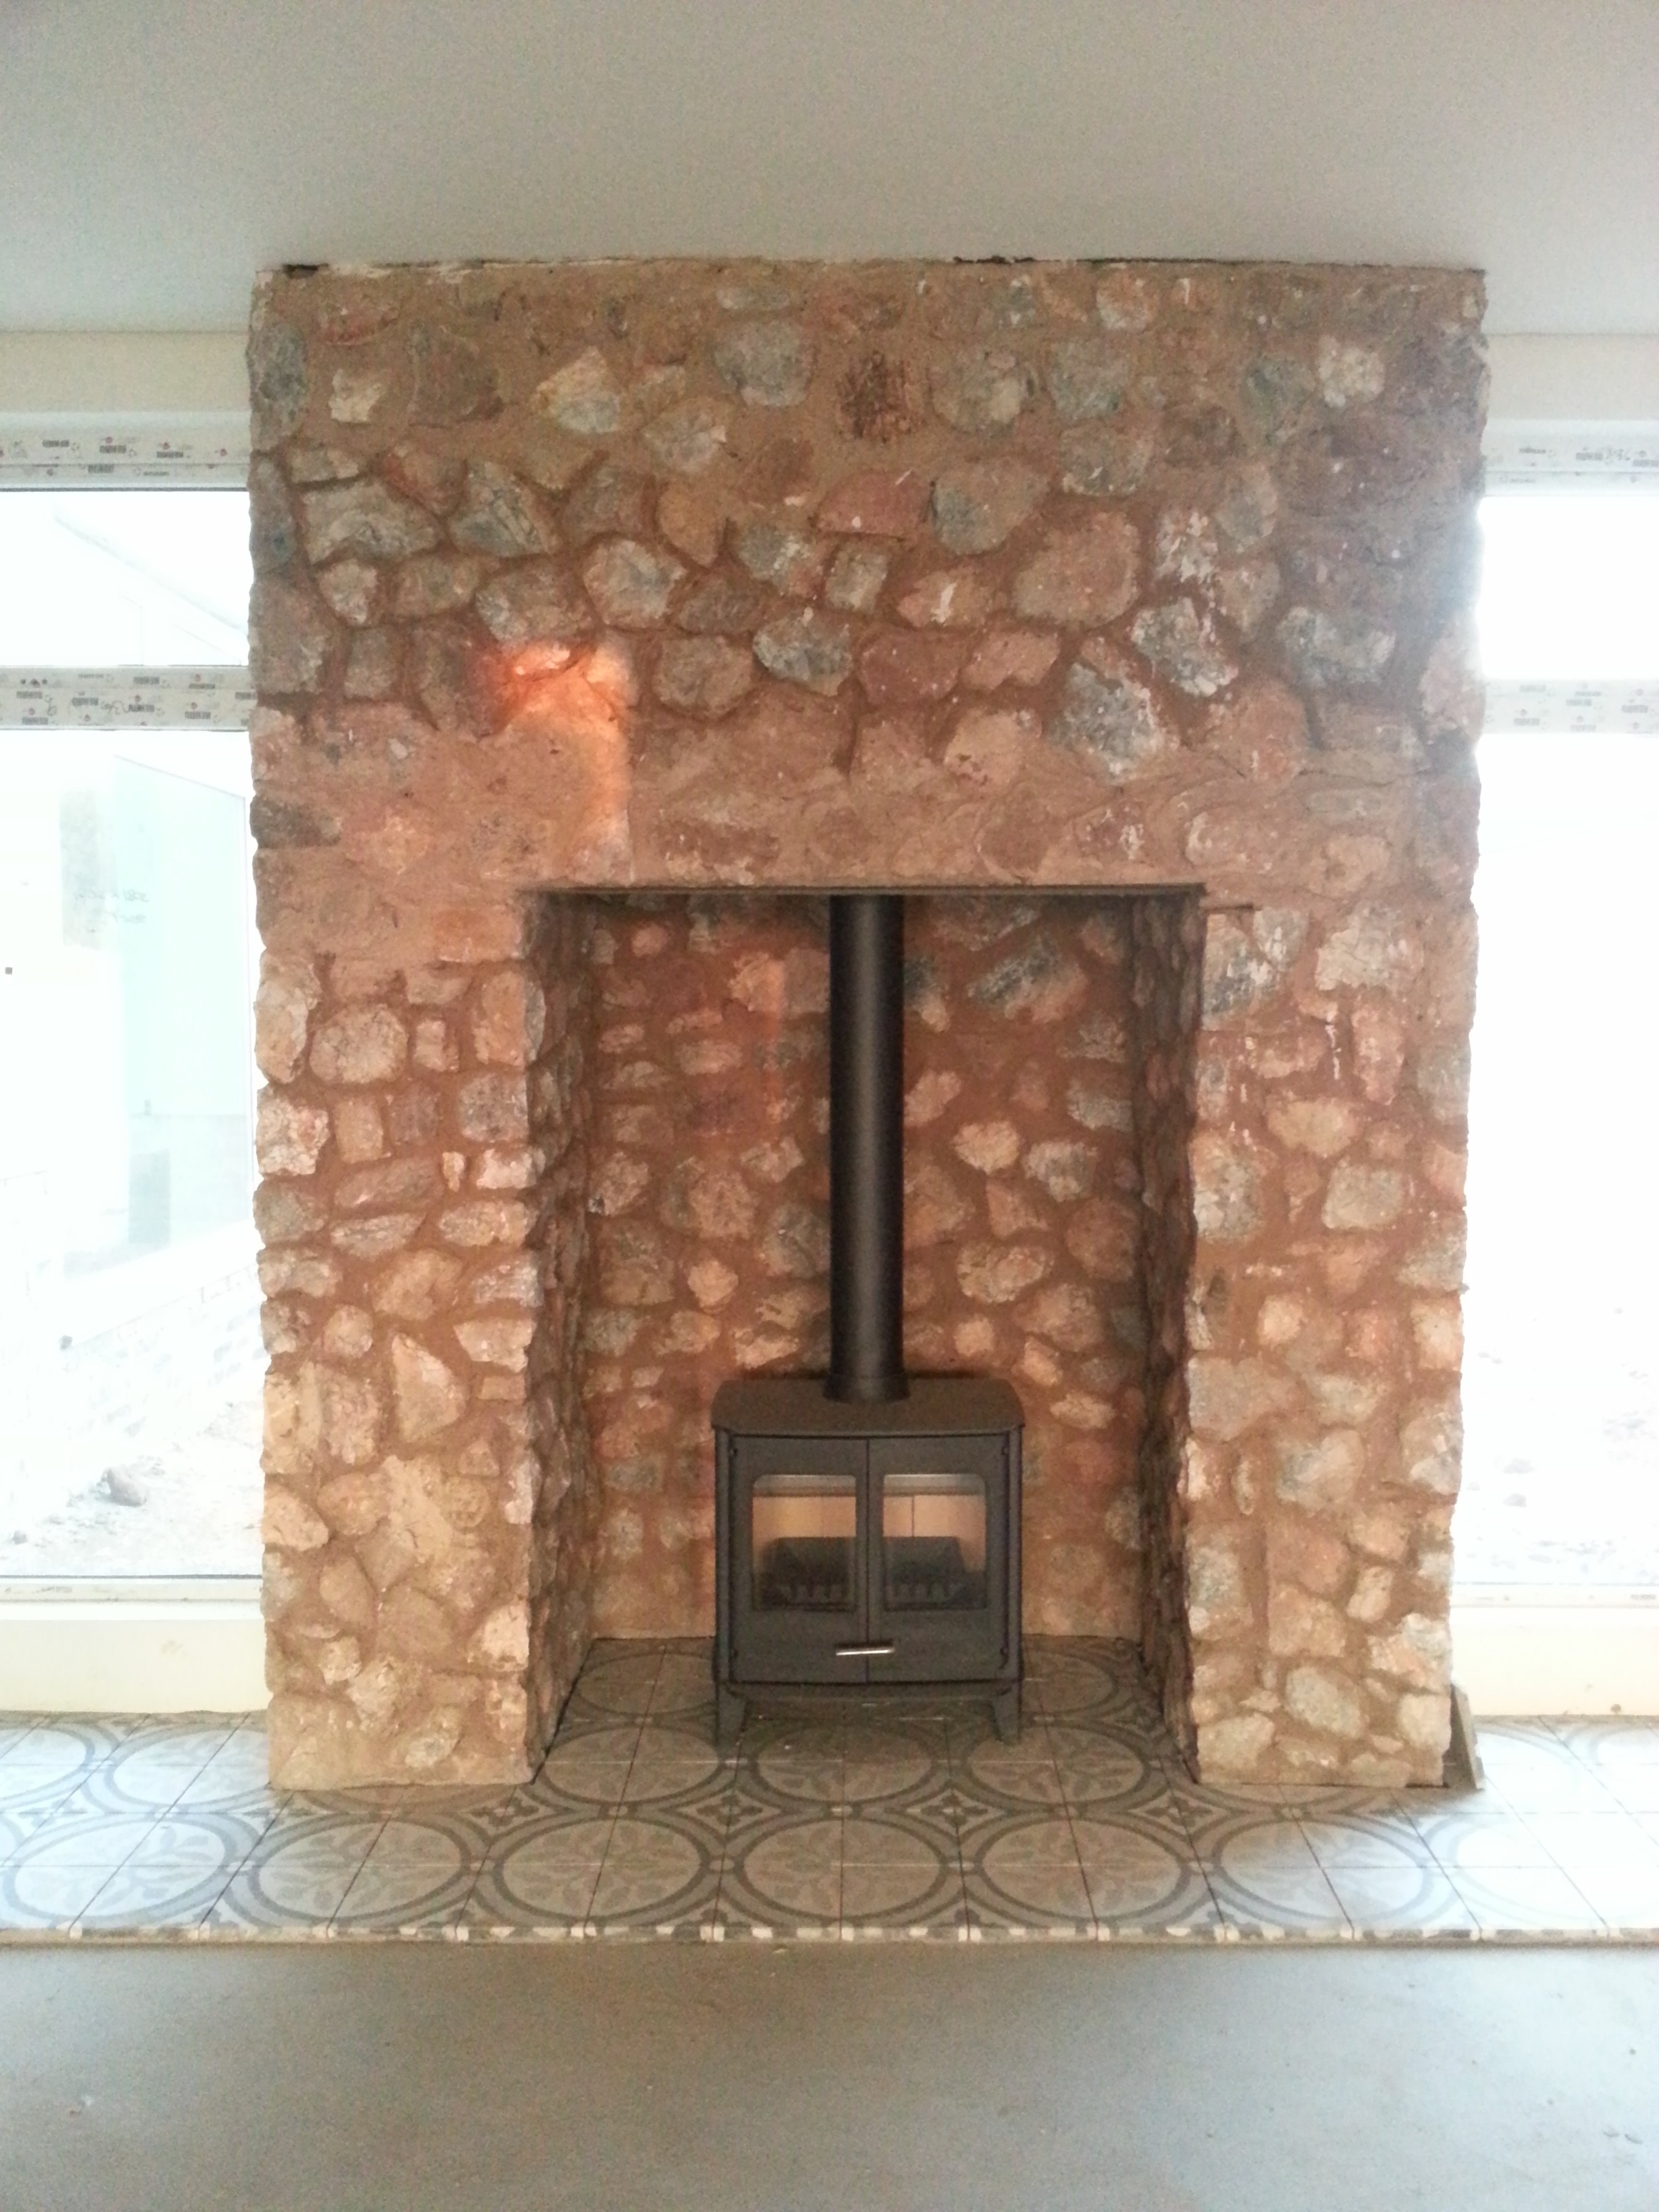 Stone Cladding on the Fire place